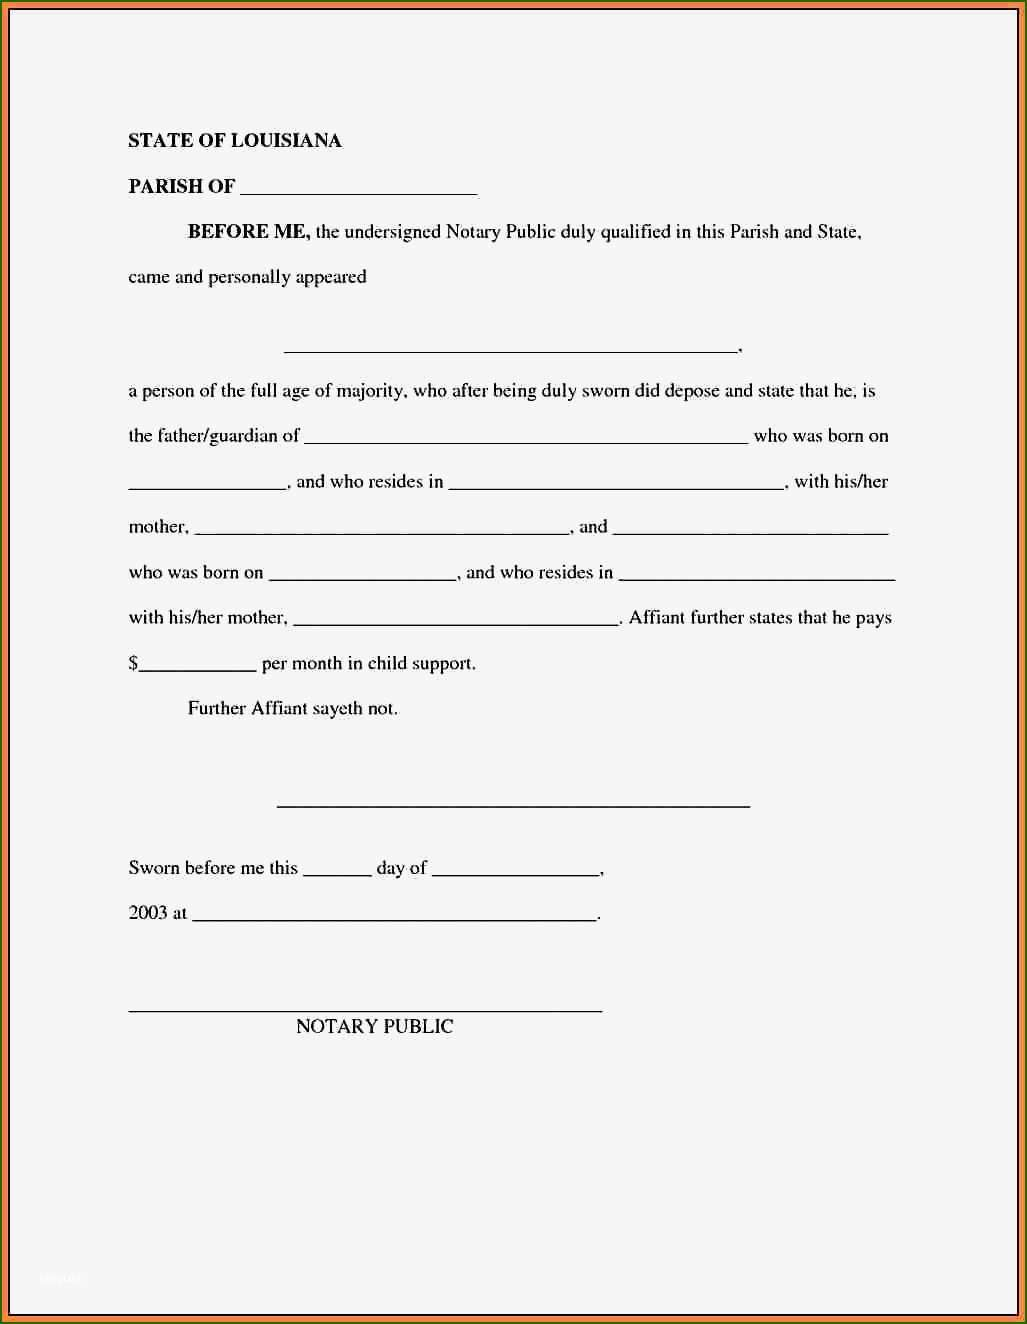 Sample Child Support Letter Template 19 Understanding 2020 In 2020 Support Letter Child Support Letter To Judge Sample child support letter template